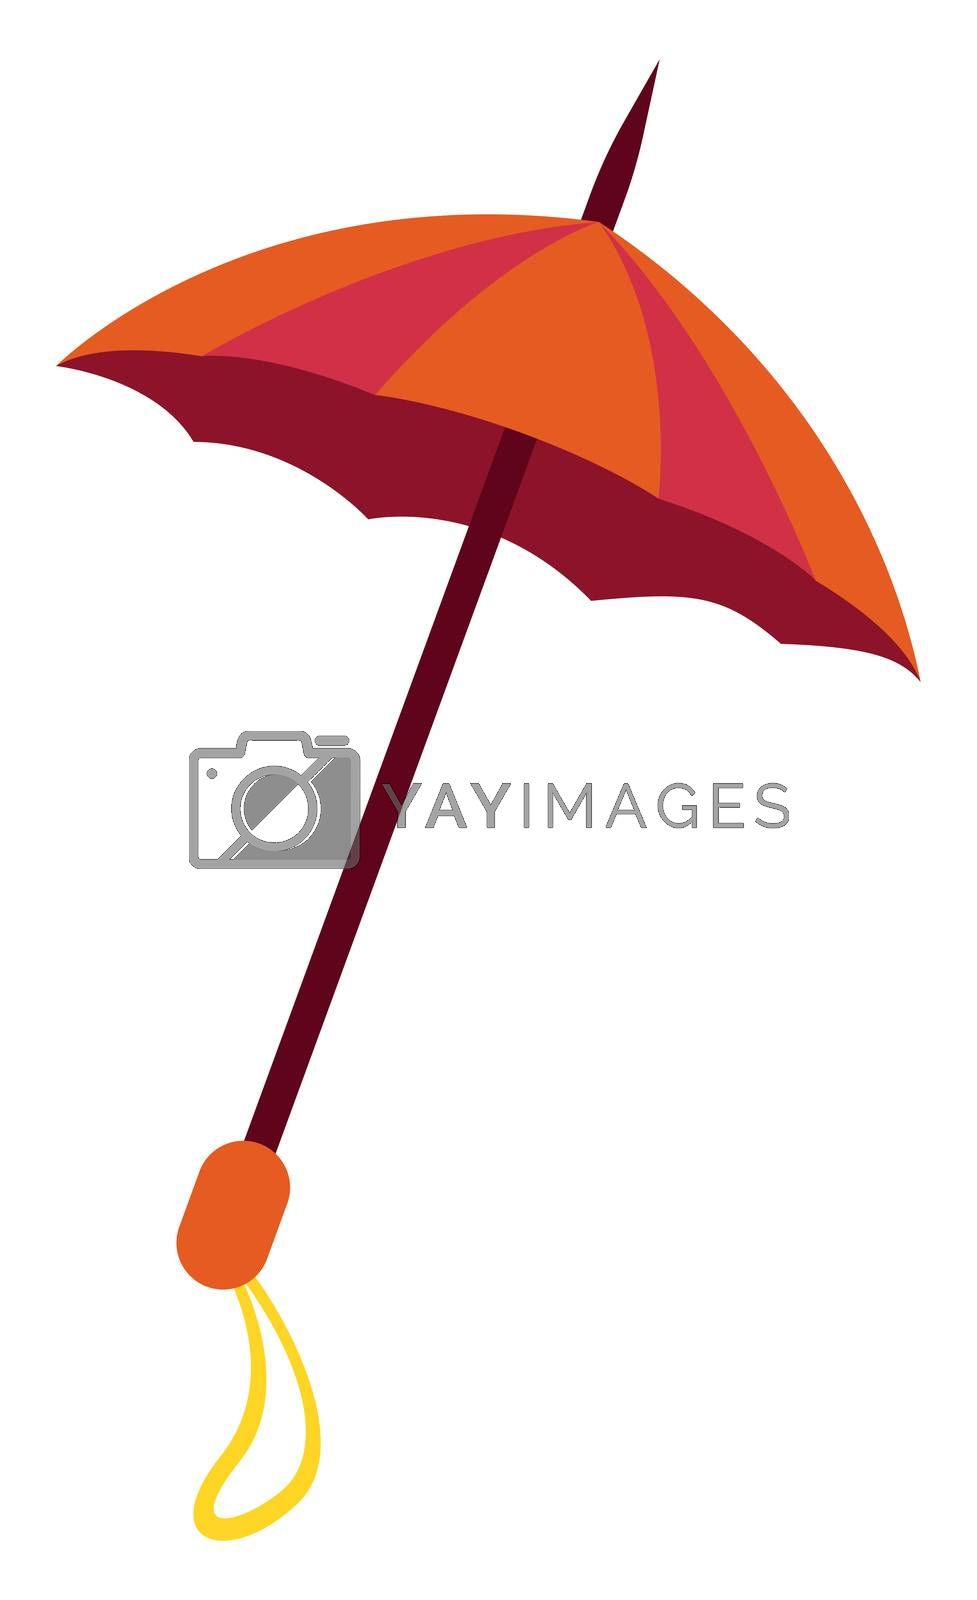 Red umbrella, illustration, vector on white background